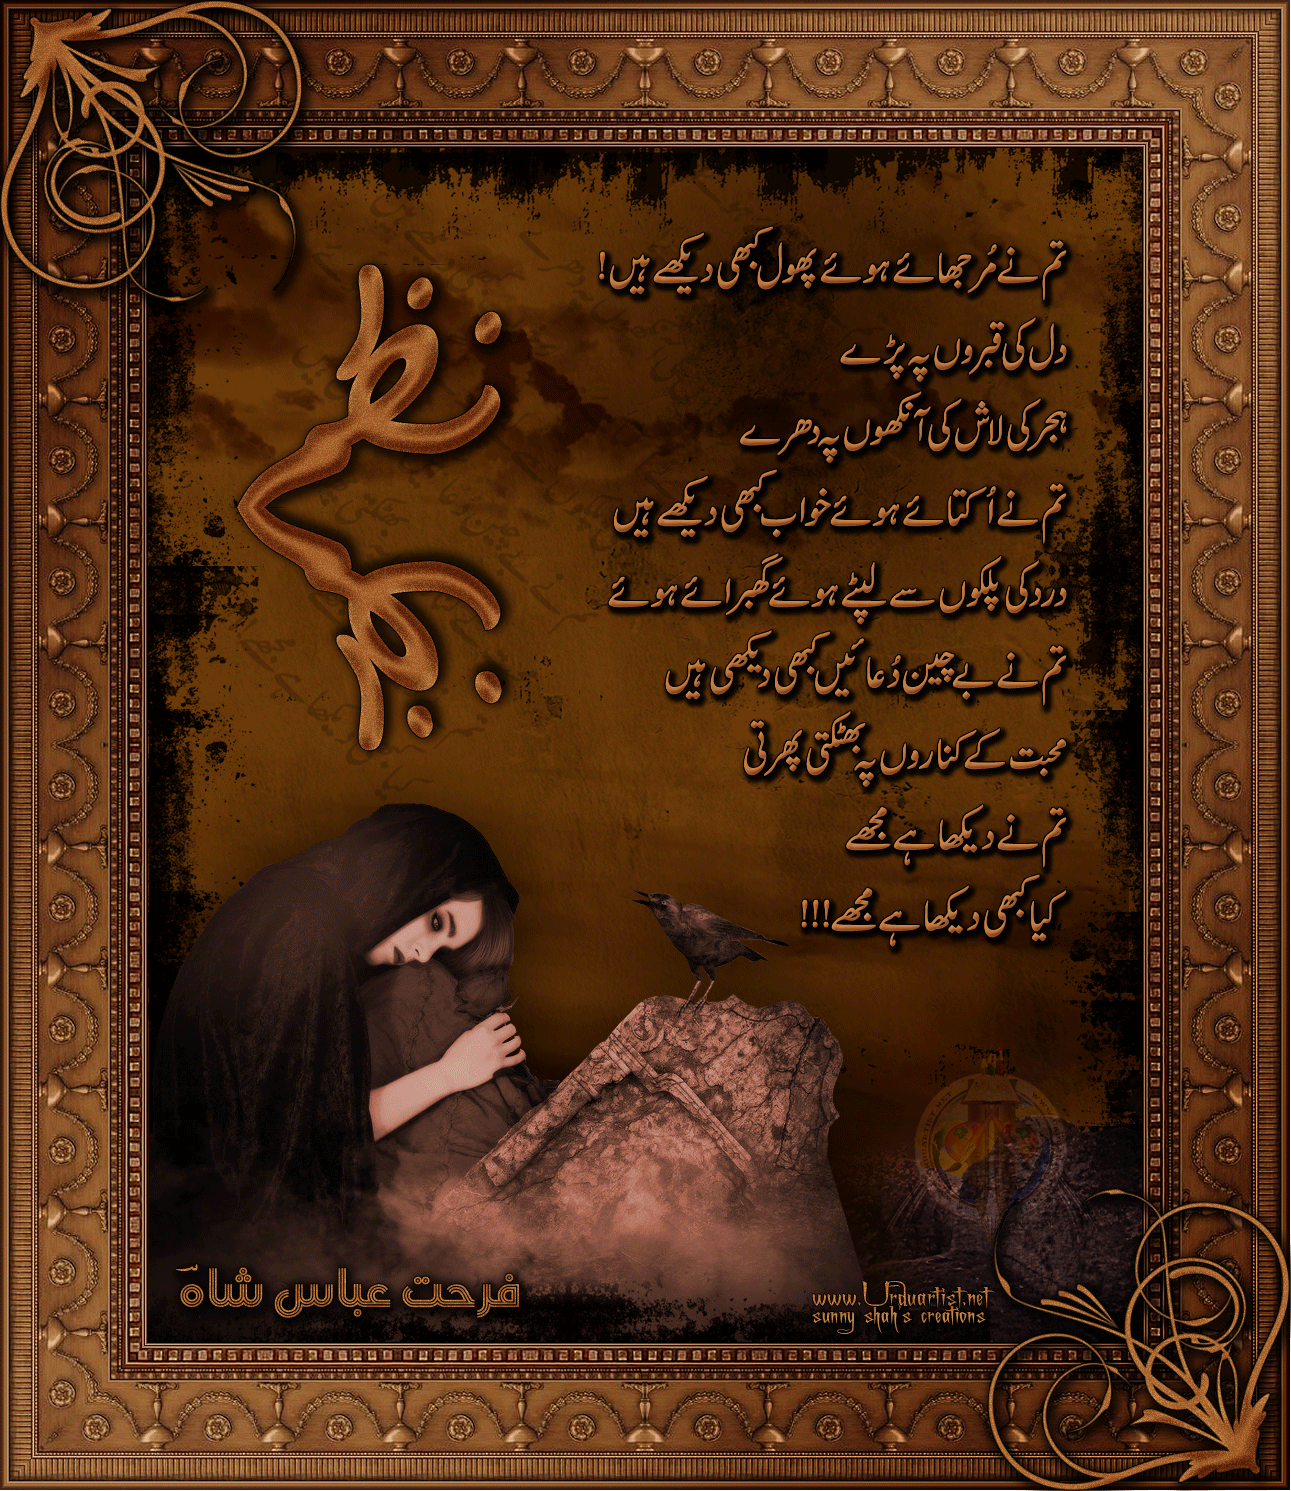 ... urdu poetry 900 x 967 123 kb jpeg urdu poetry about birthday 450